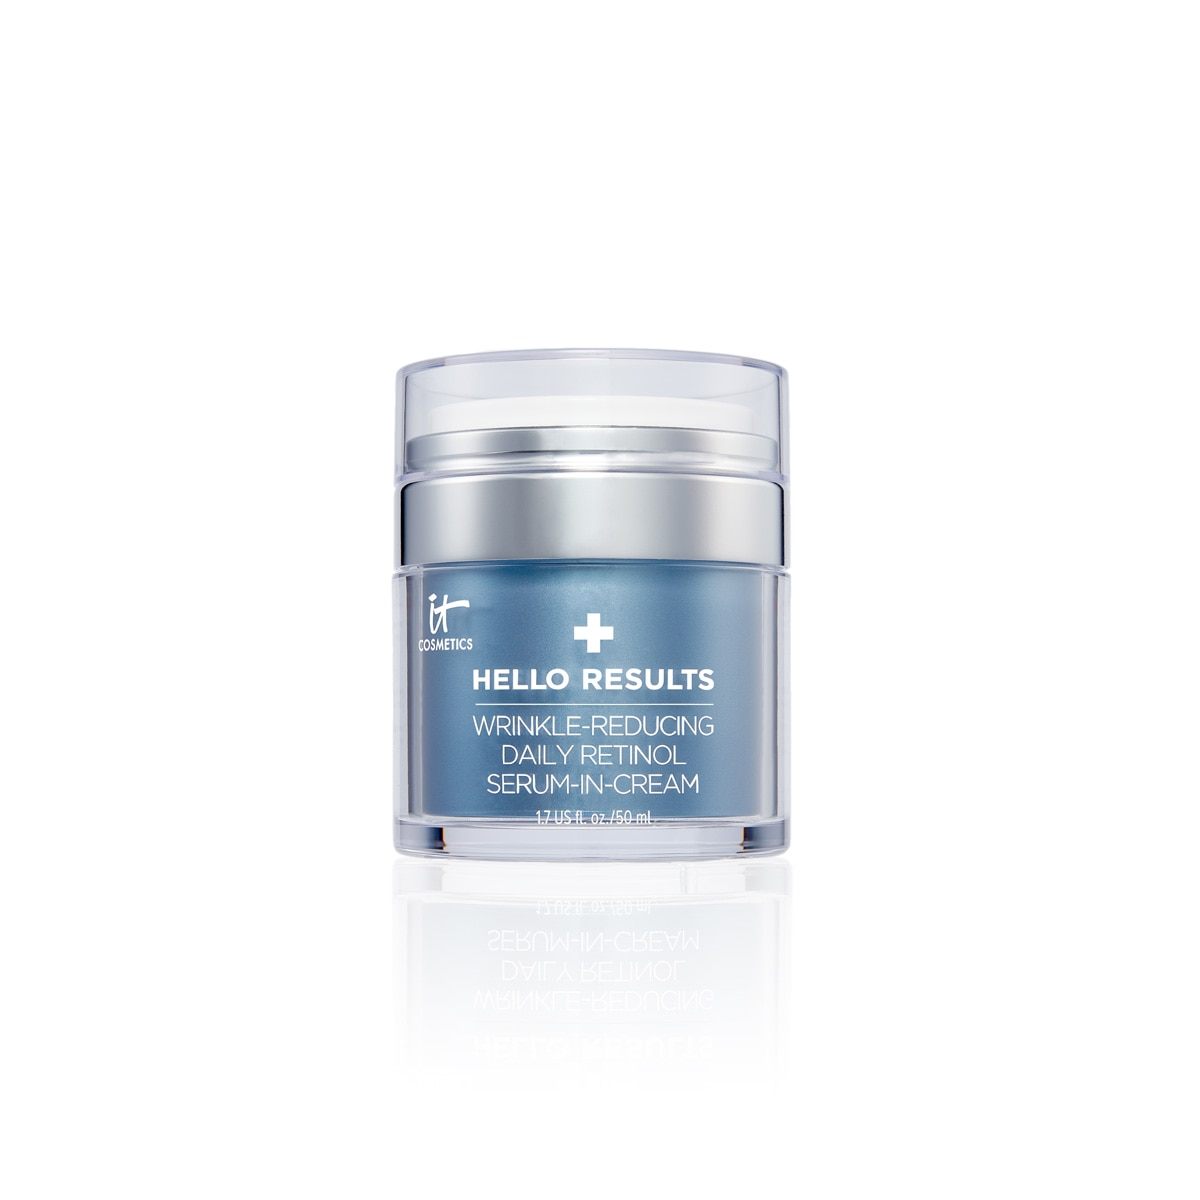 HELLO RESULTS WRINKLE-REDUCING DAILY RETINOL FULL SIZE 50ML